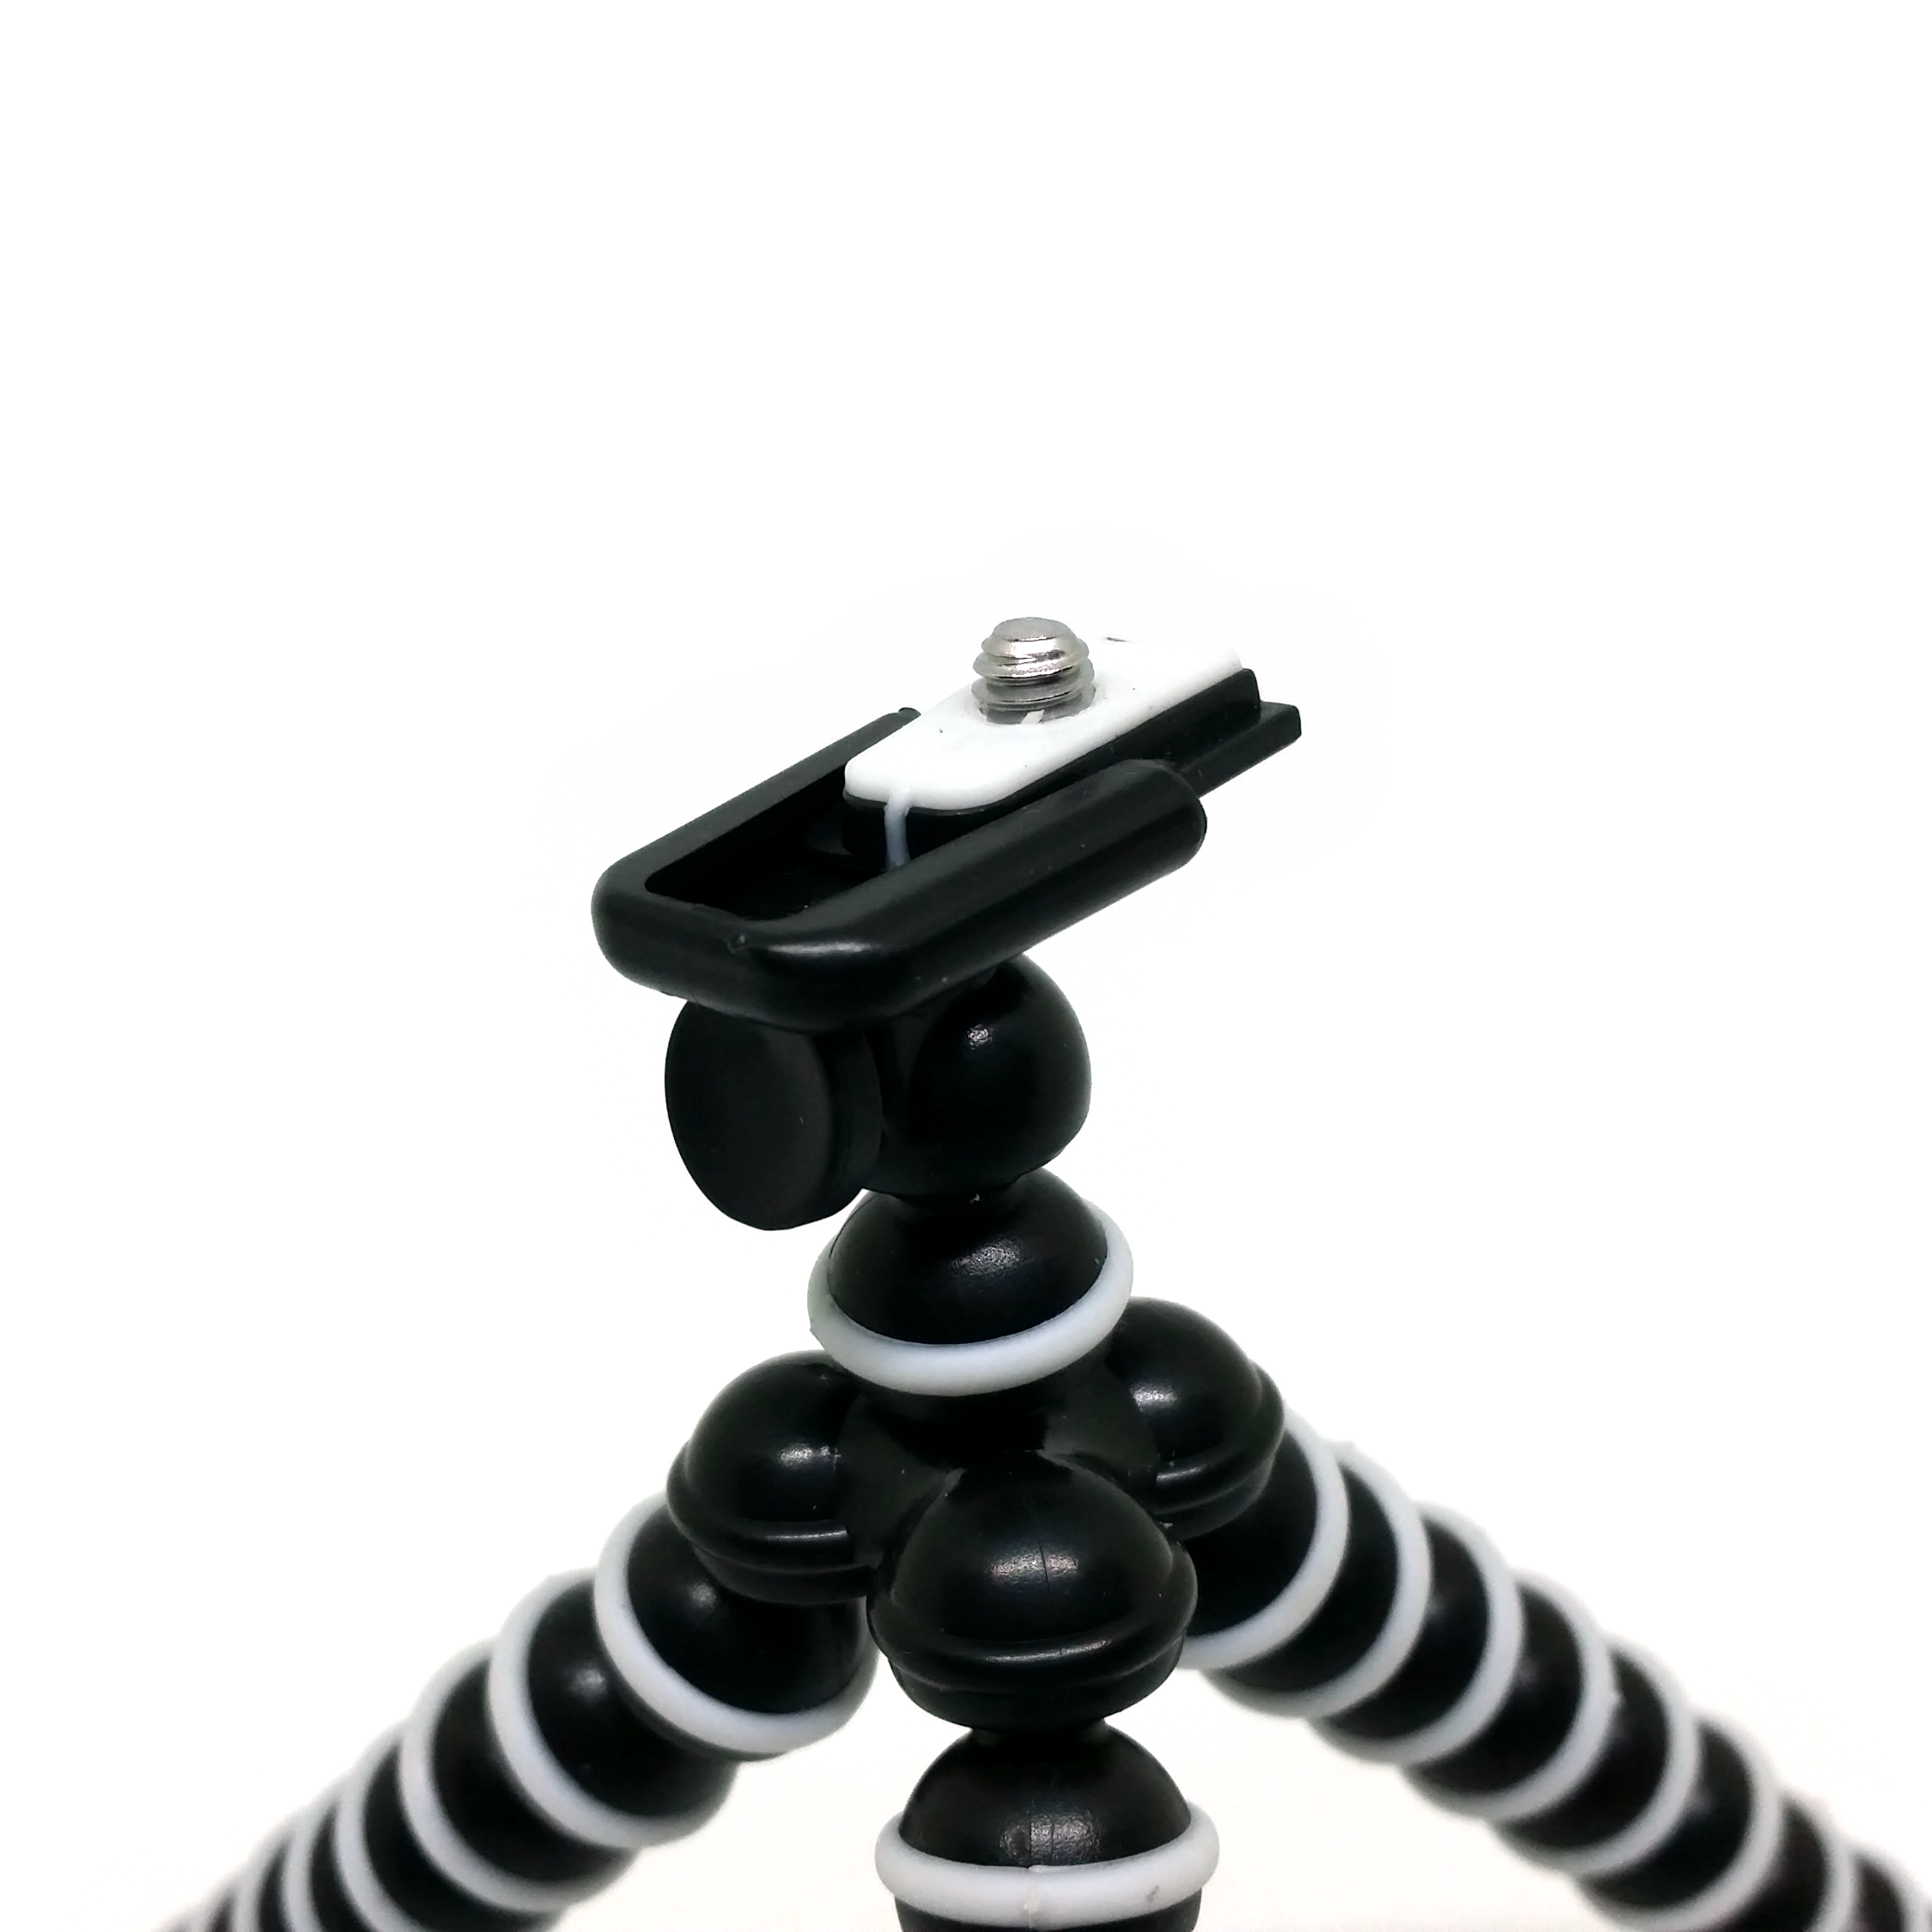 tripod-handphone-bracket-holder-2